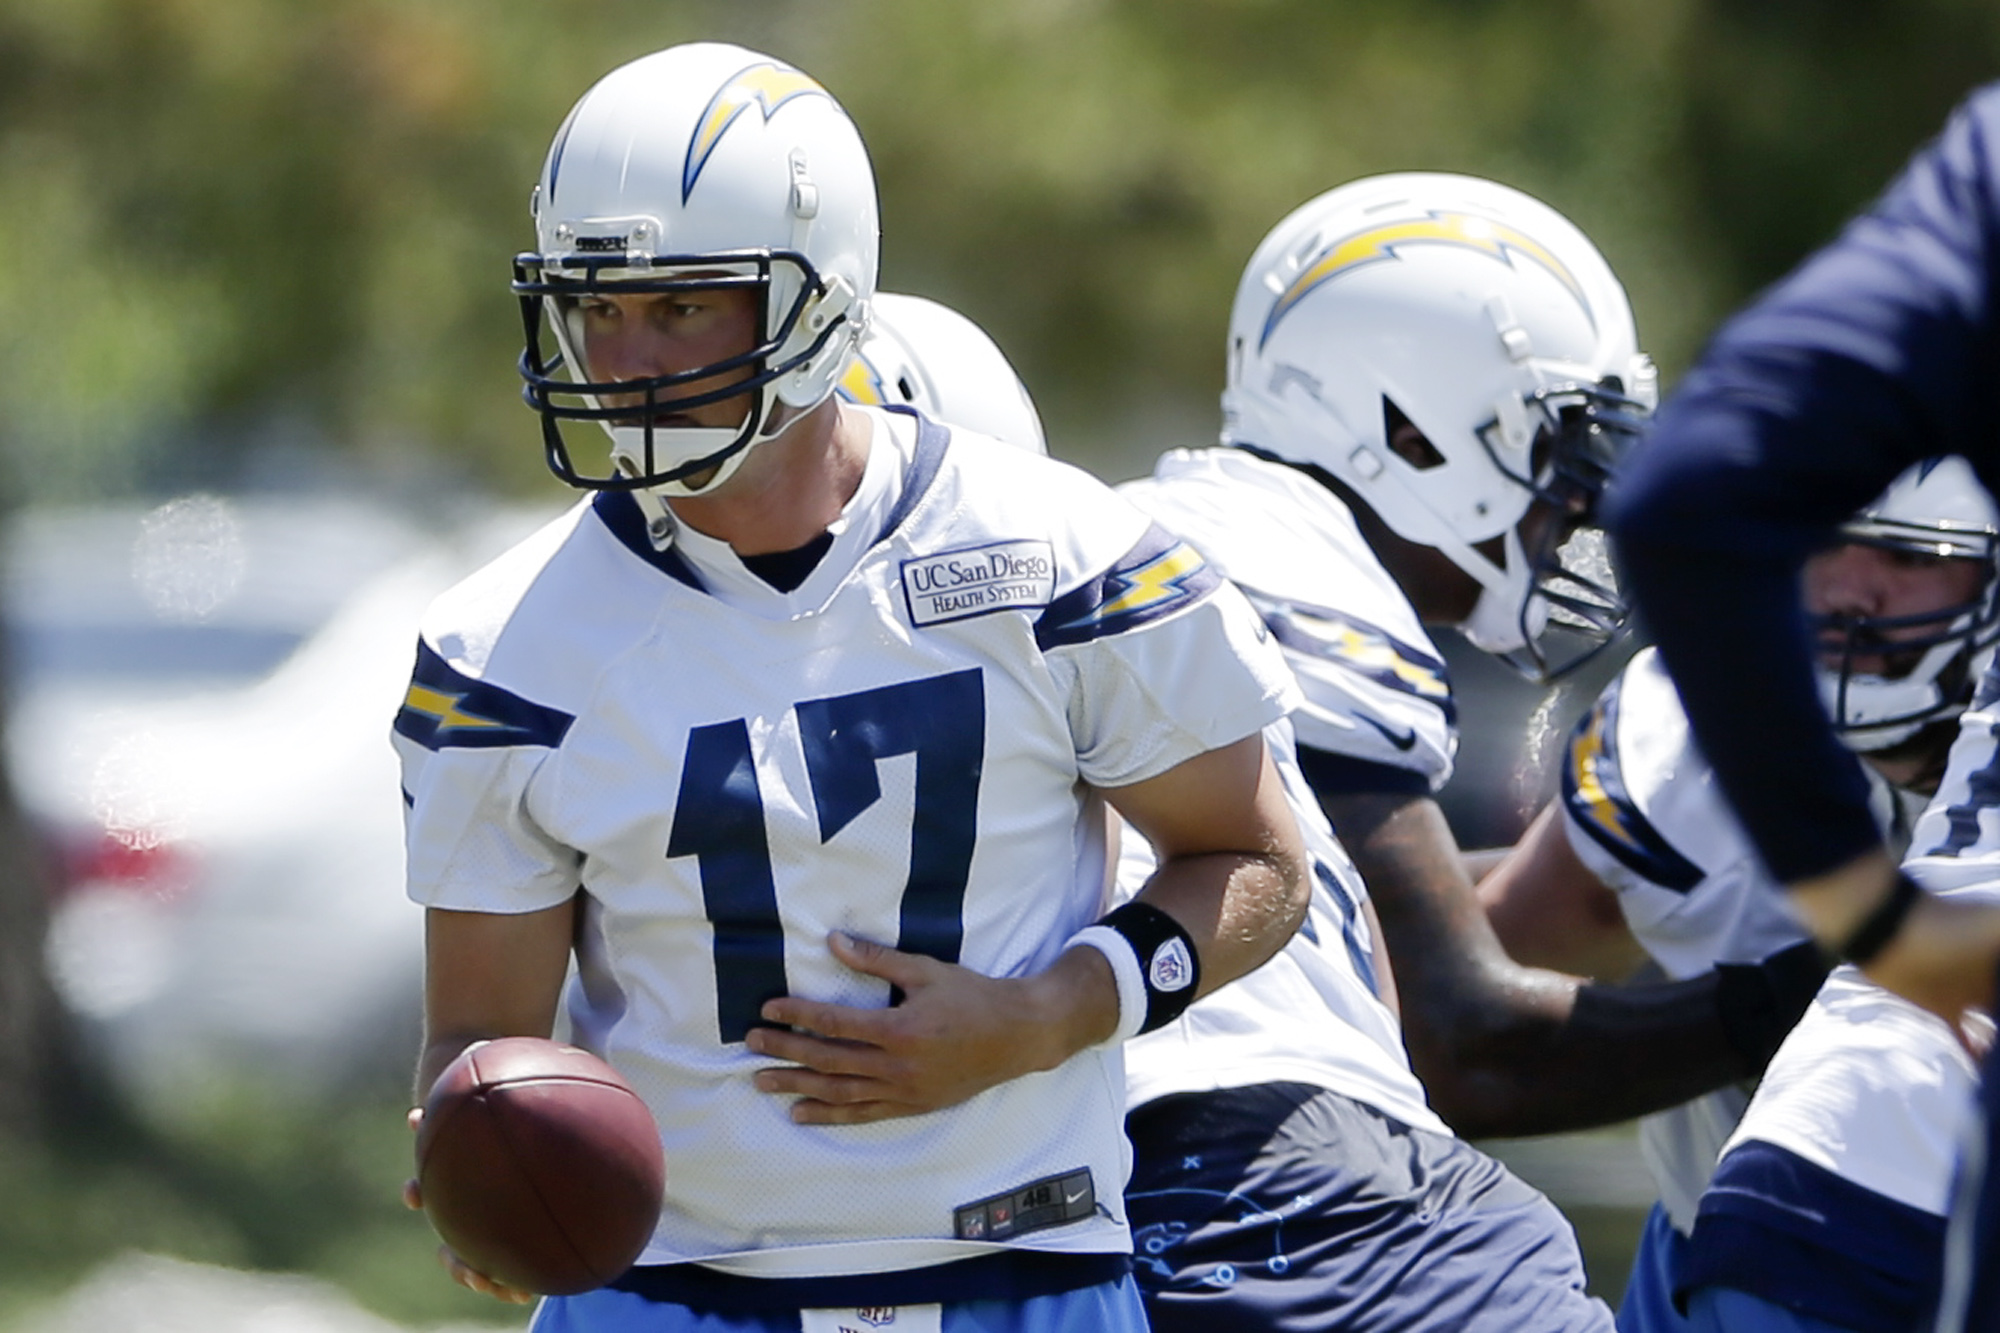 San Diego Chargers quarterback Philip Rivers runs a play during an NFL football organized training activity Monday, June 1, 2015, in San Diego. (AP Photo/Gregory Bull)